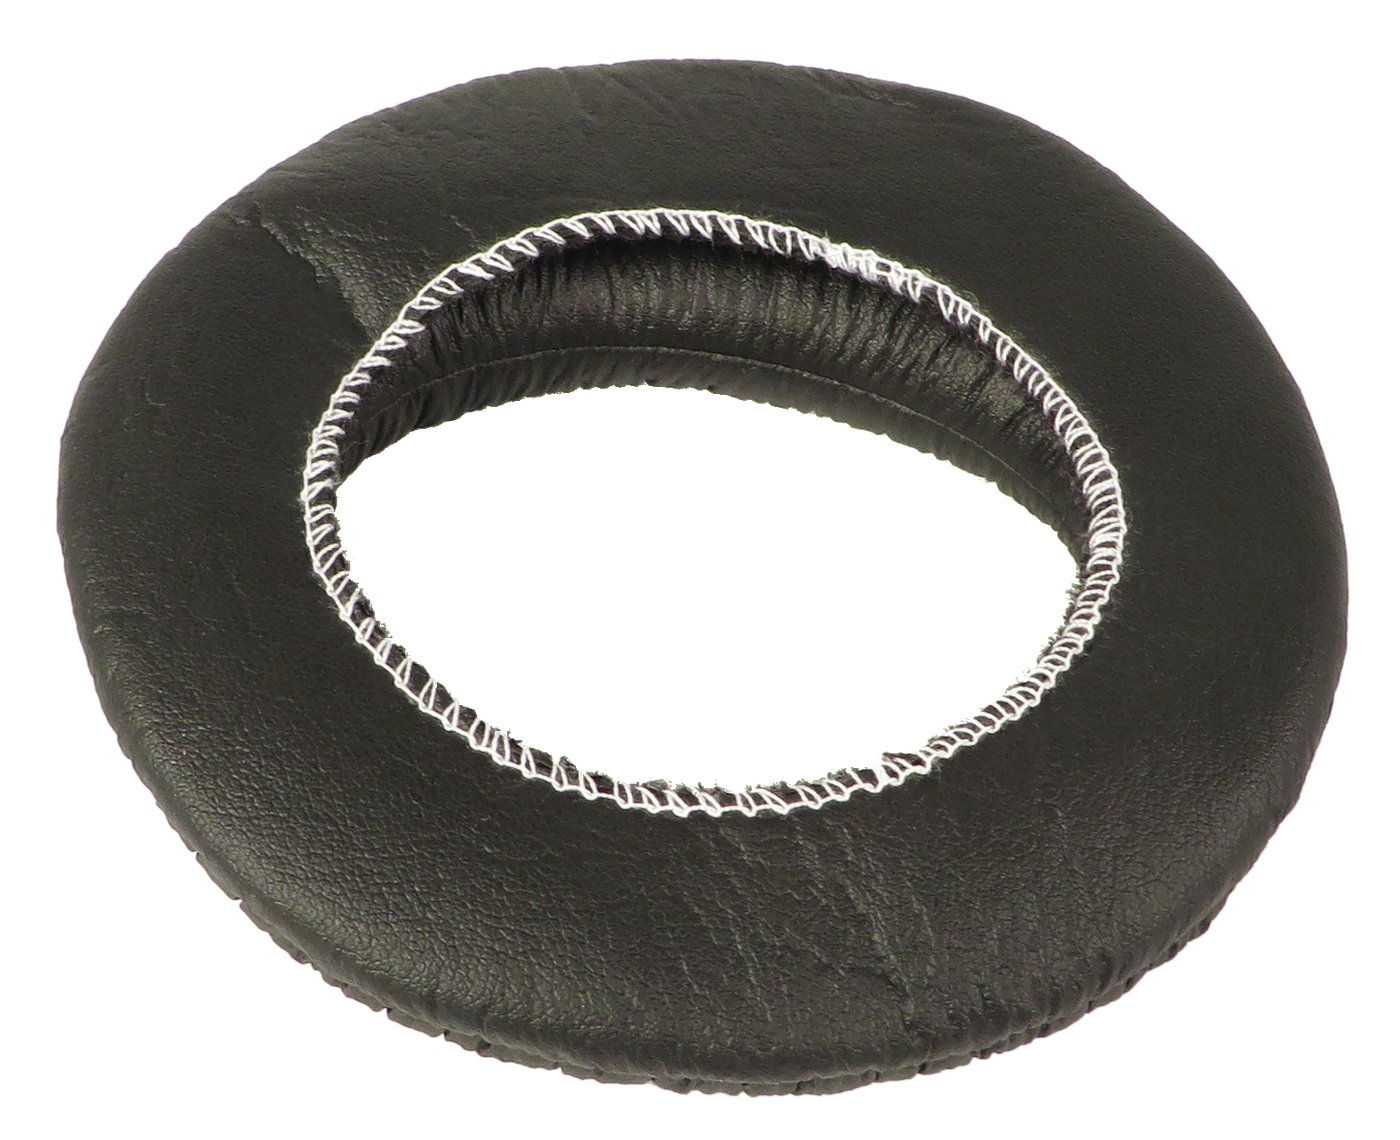 Earpad for MDRR985R, MDRR985RK, MDRRF985R (Single)